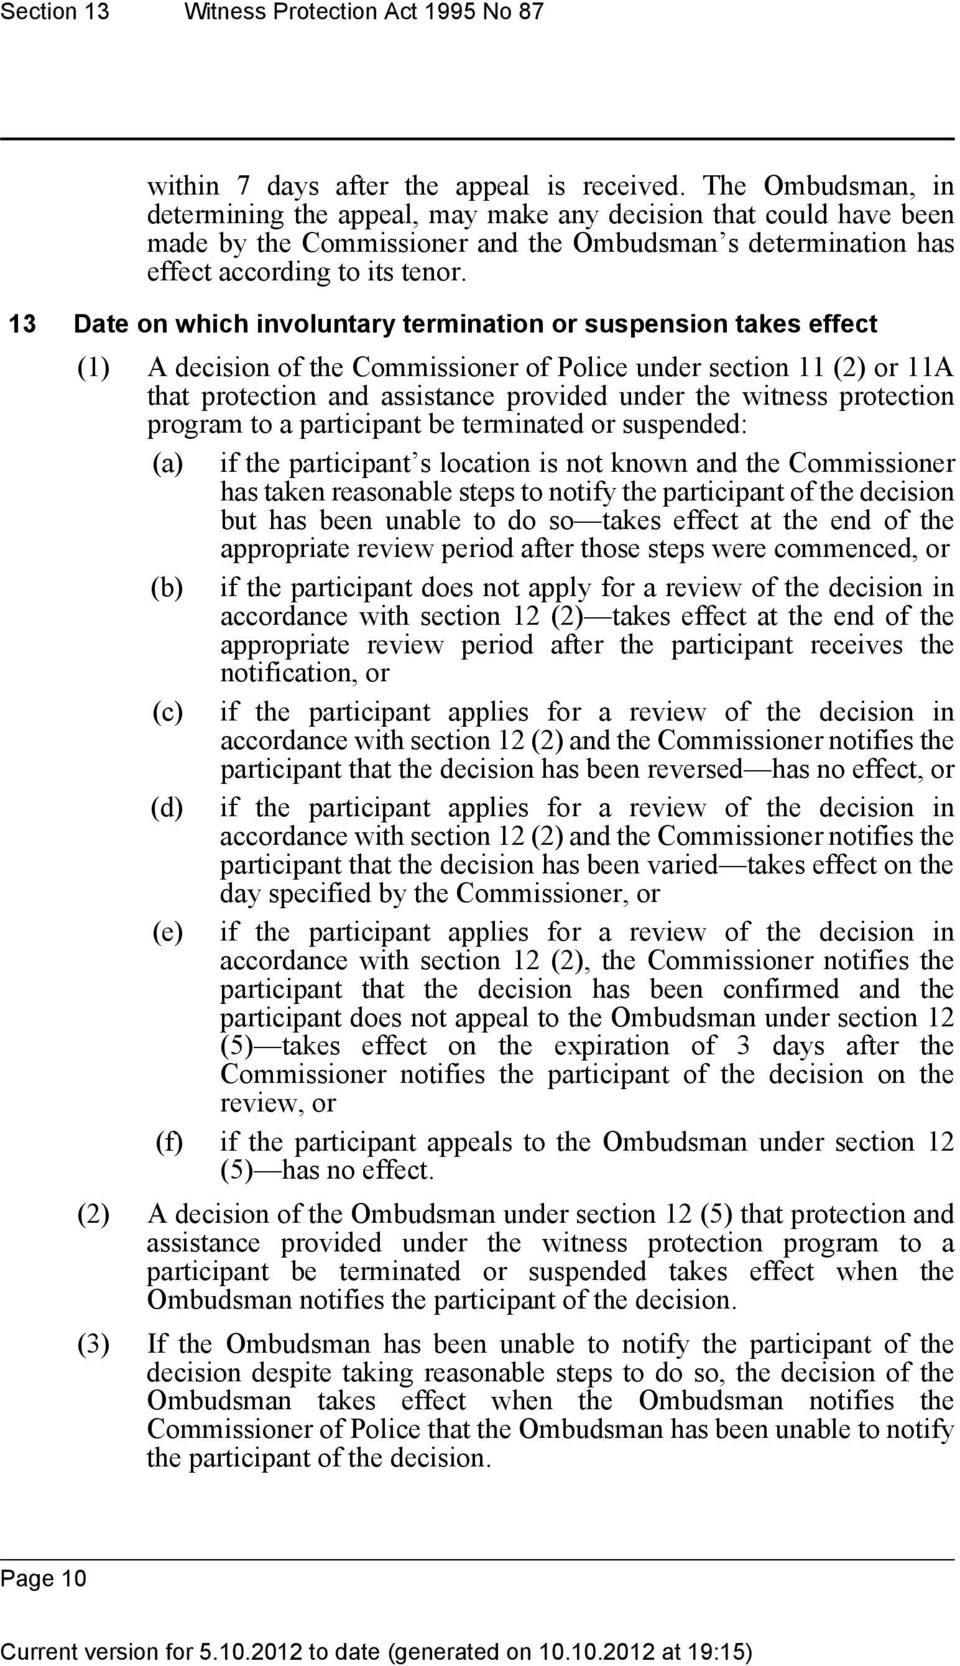 13 Date on which involuntary termination or suspension takes effect (1) A decision of the Commissioner of Police under section 11 (2) or 11A that protection and assistance provided under the witness